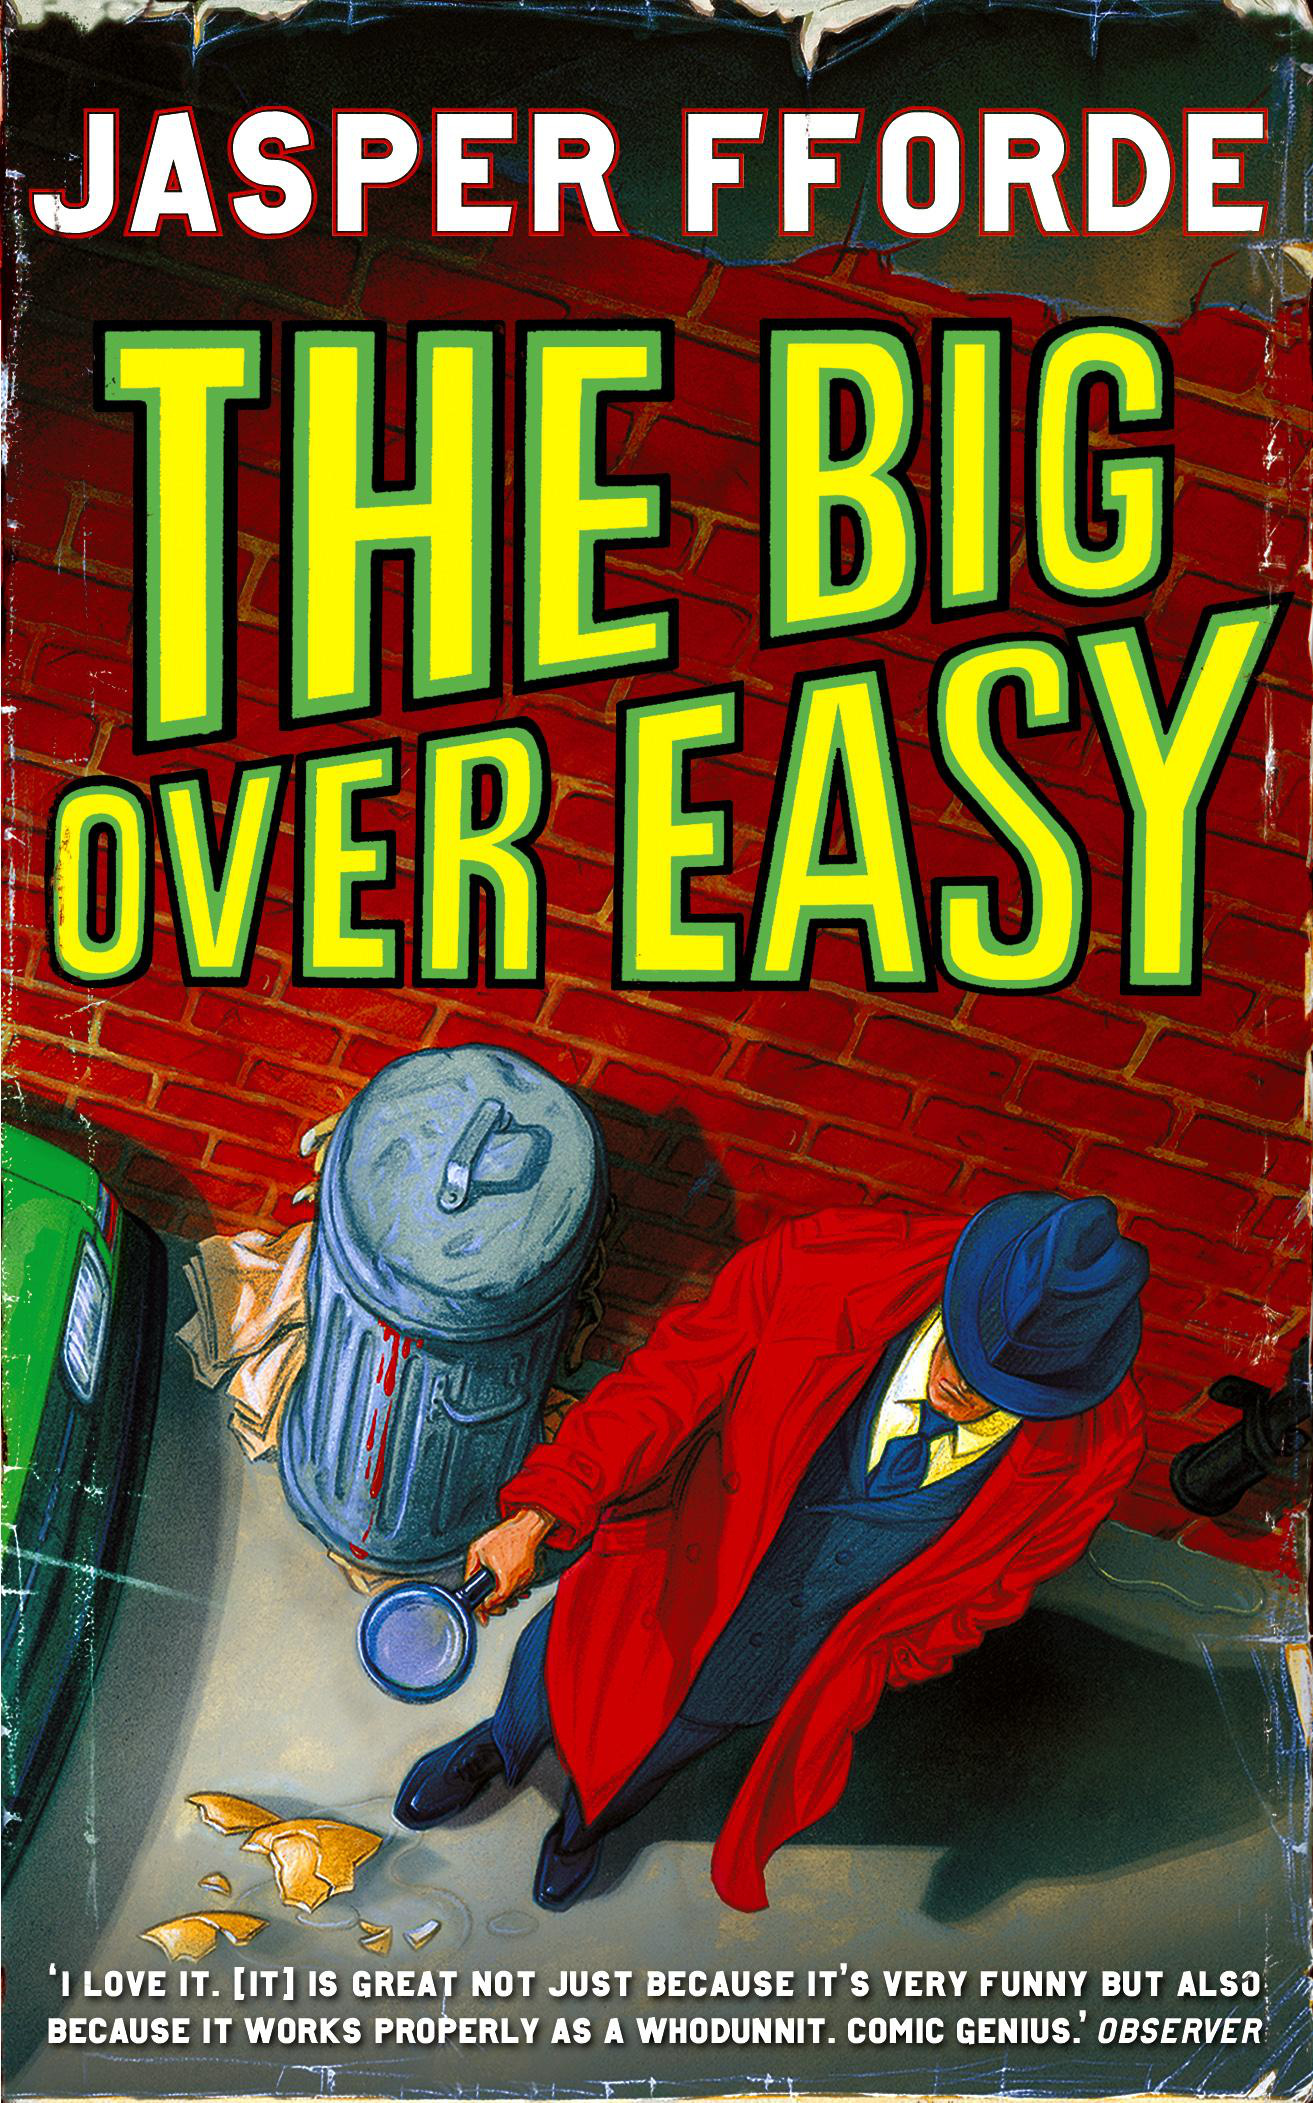 Big Over Easy by Jasper Fforde